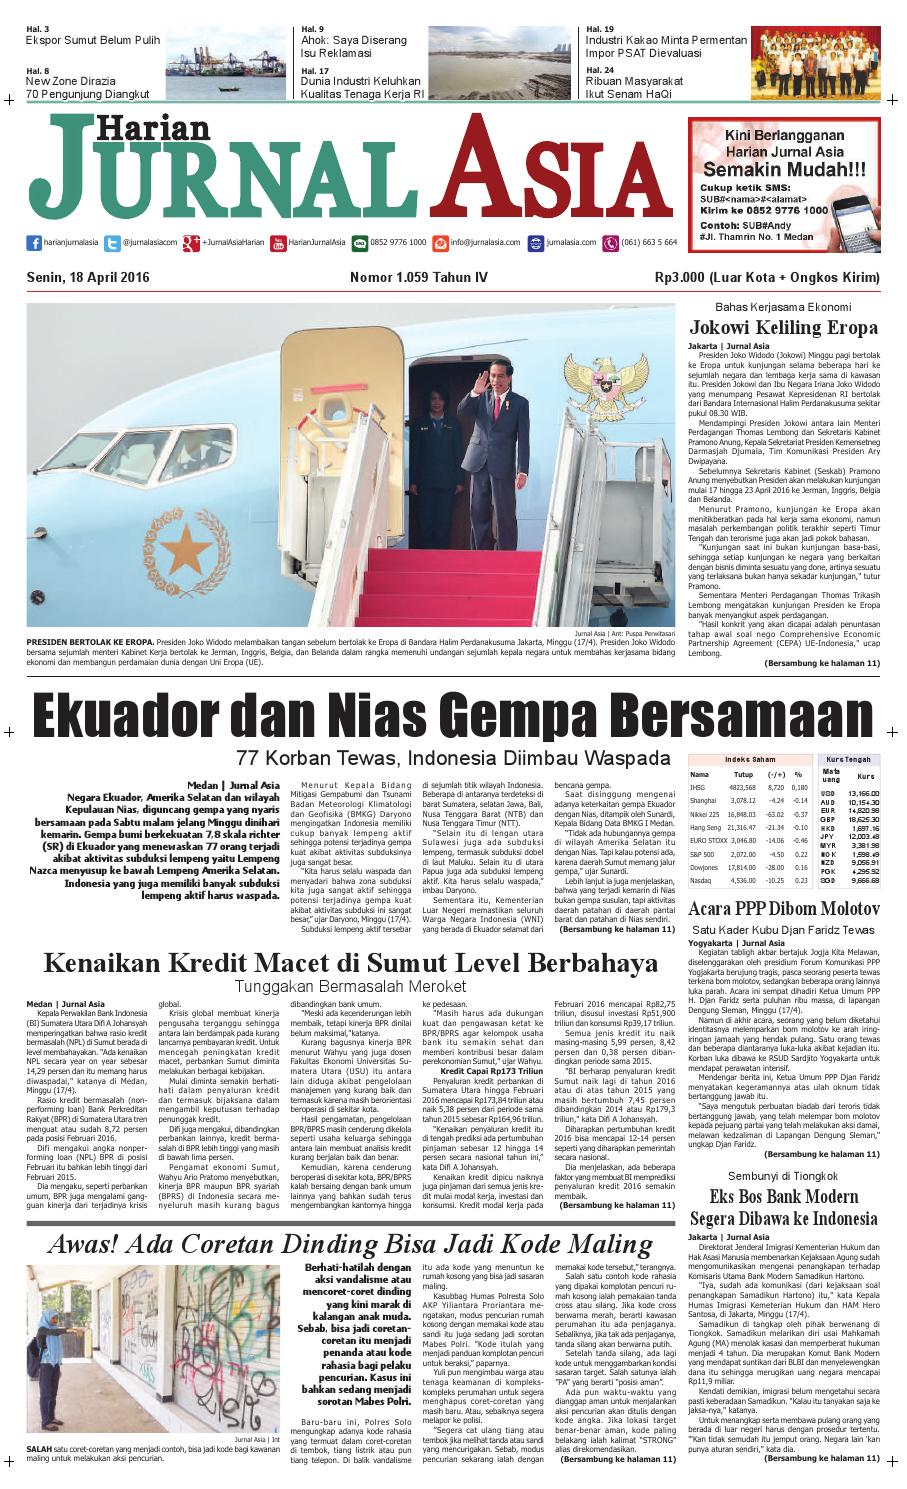 Harian Jurnal Asia Edisi Senin 18 April 2016 By Harian